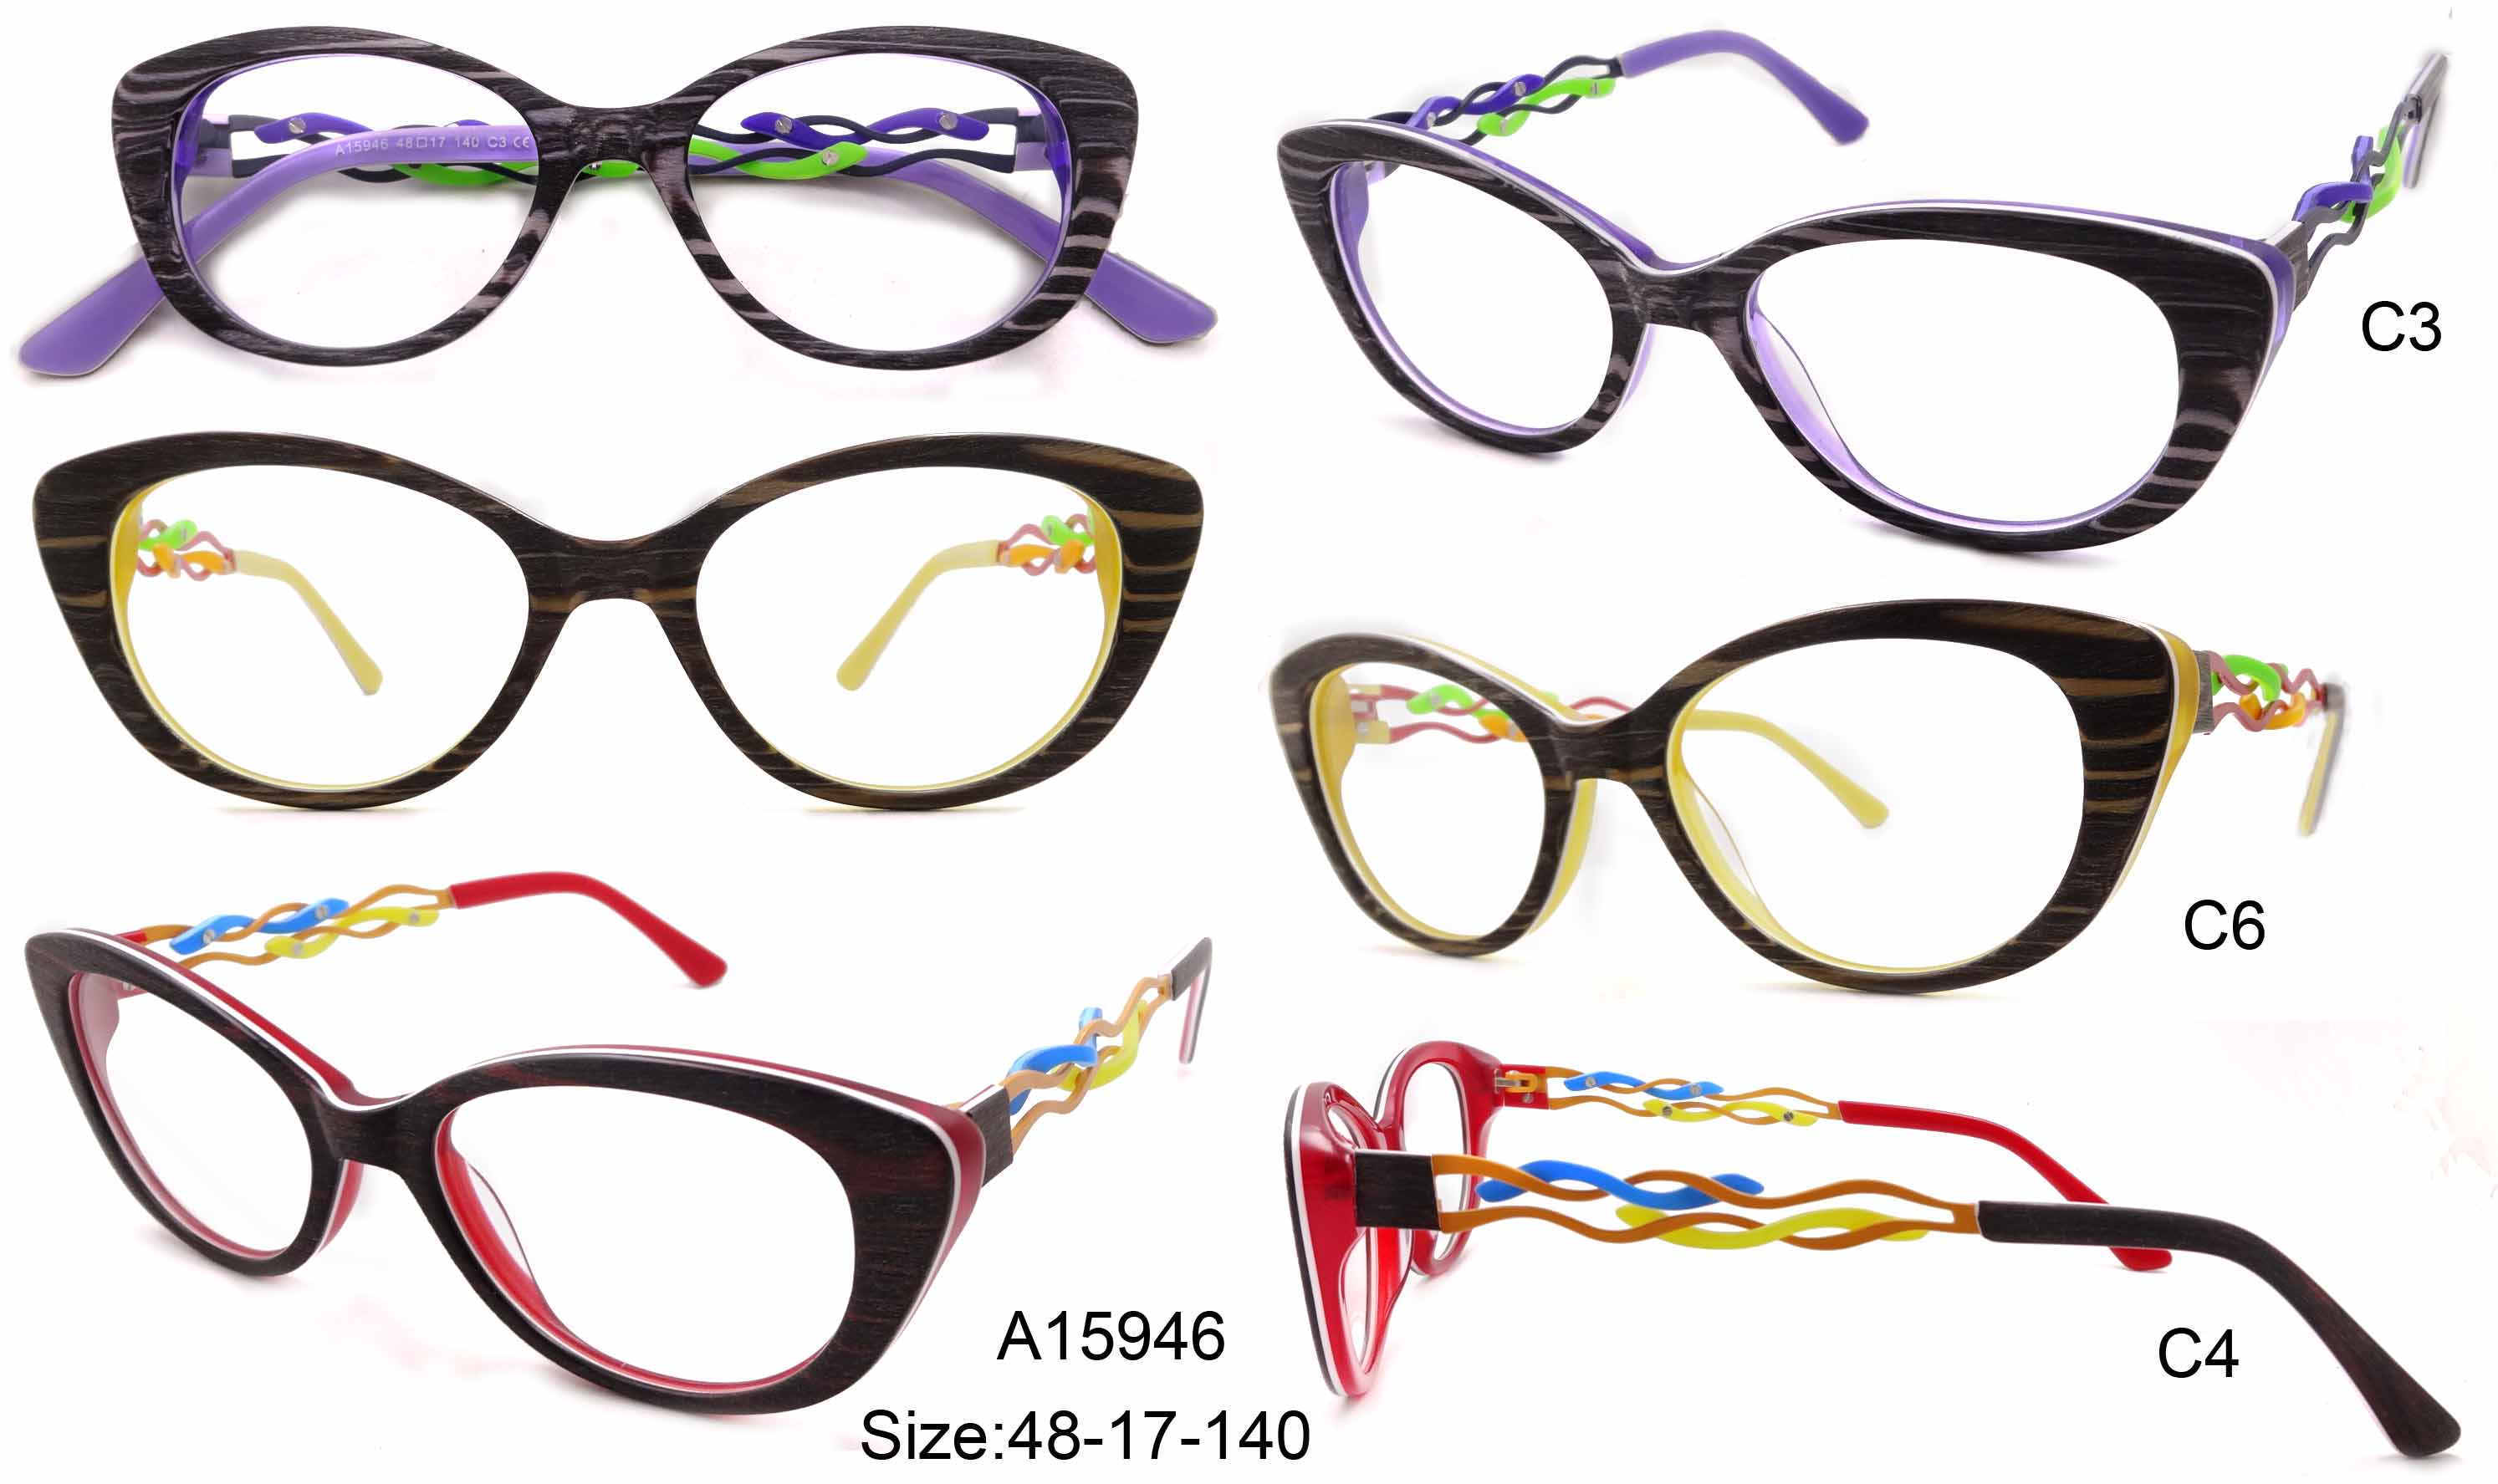 OEM acetate optical frames eyeglasses frame, custom eyewear